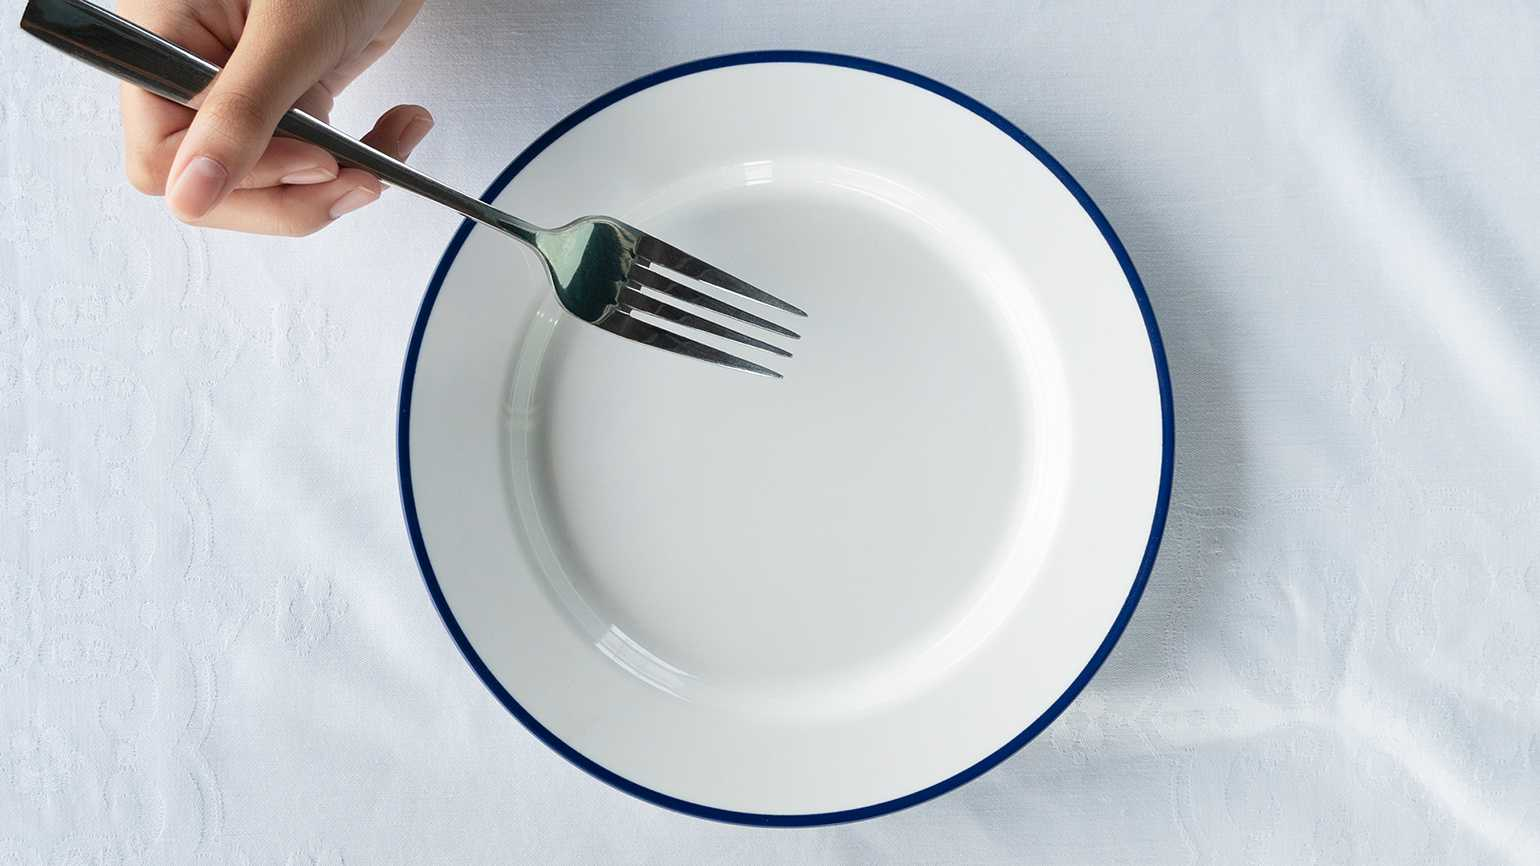 The hand of a woman diner clasps a fork